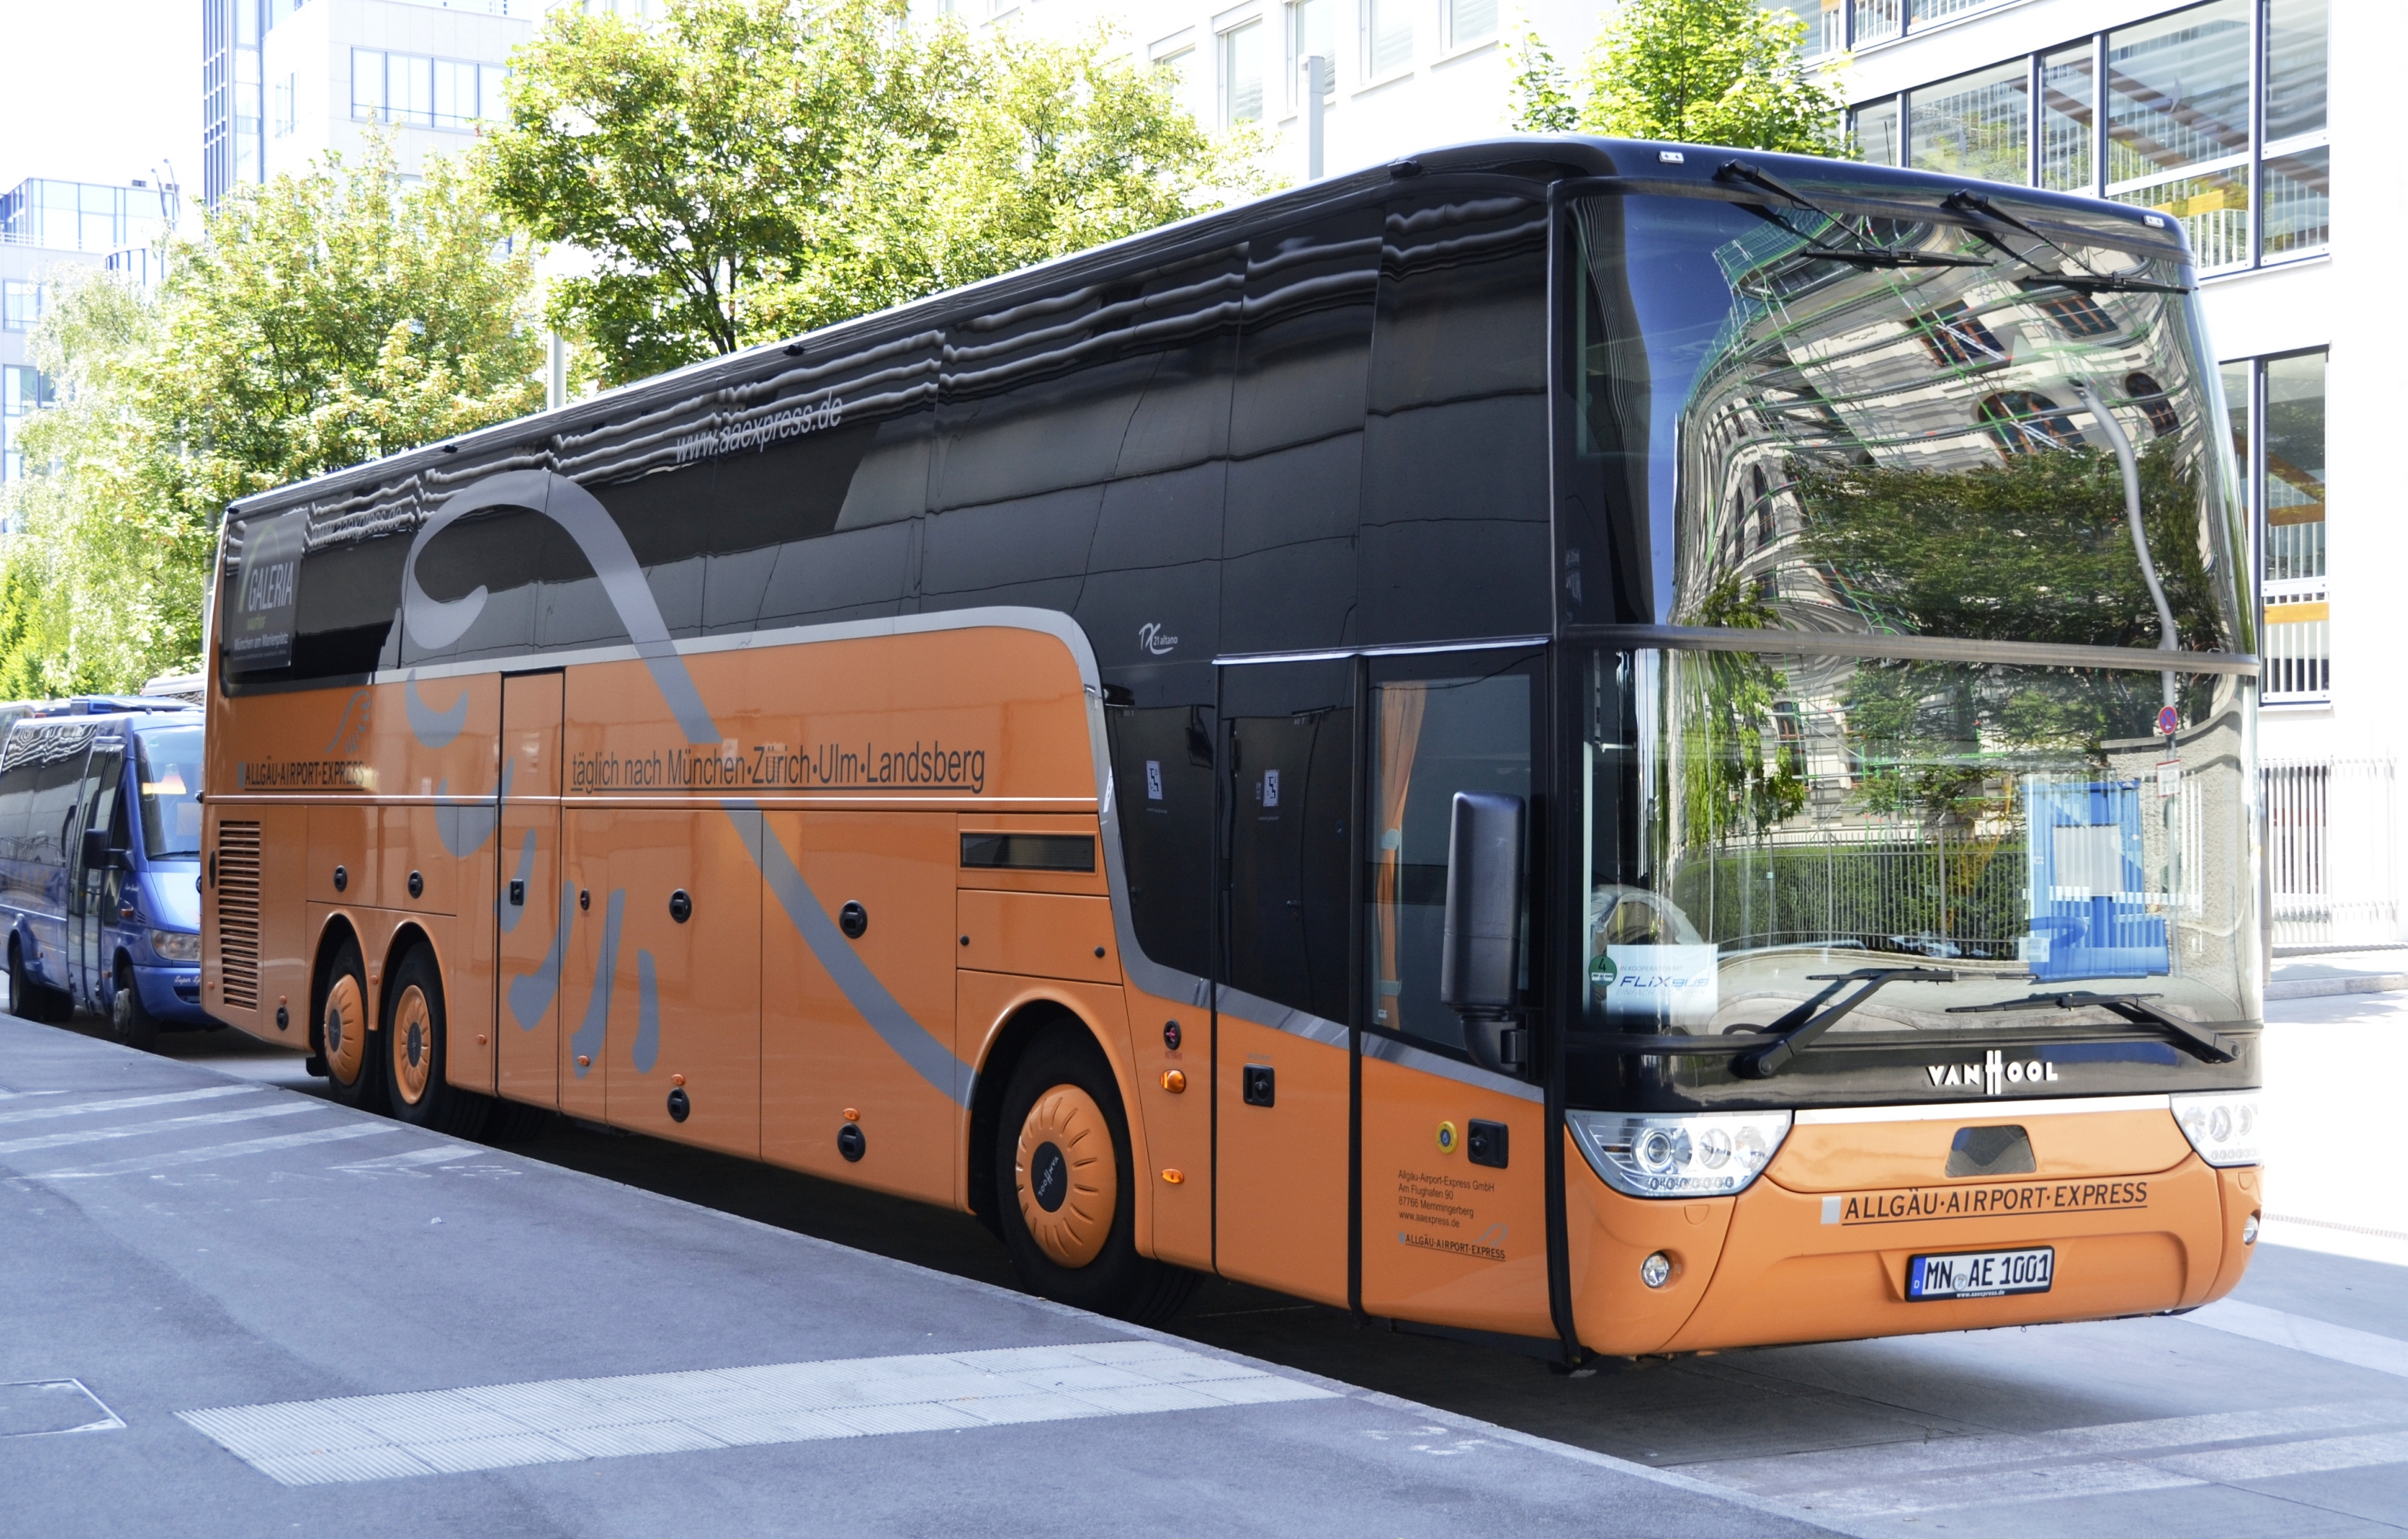 Vanhool bus photo - 3